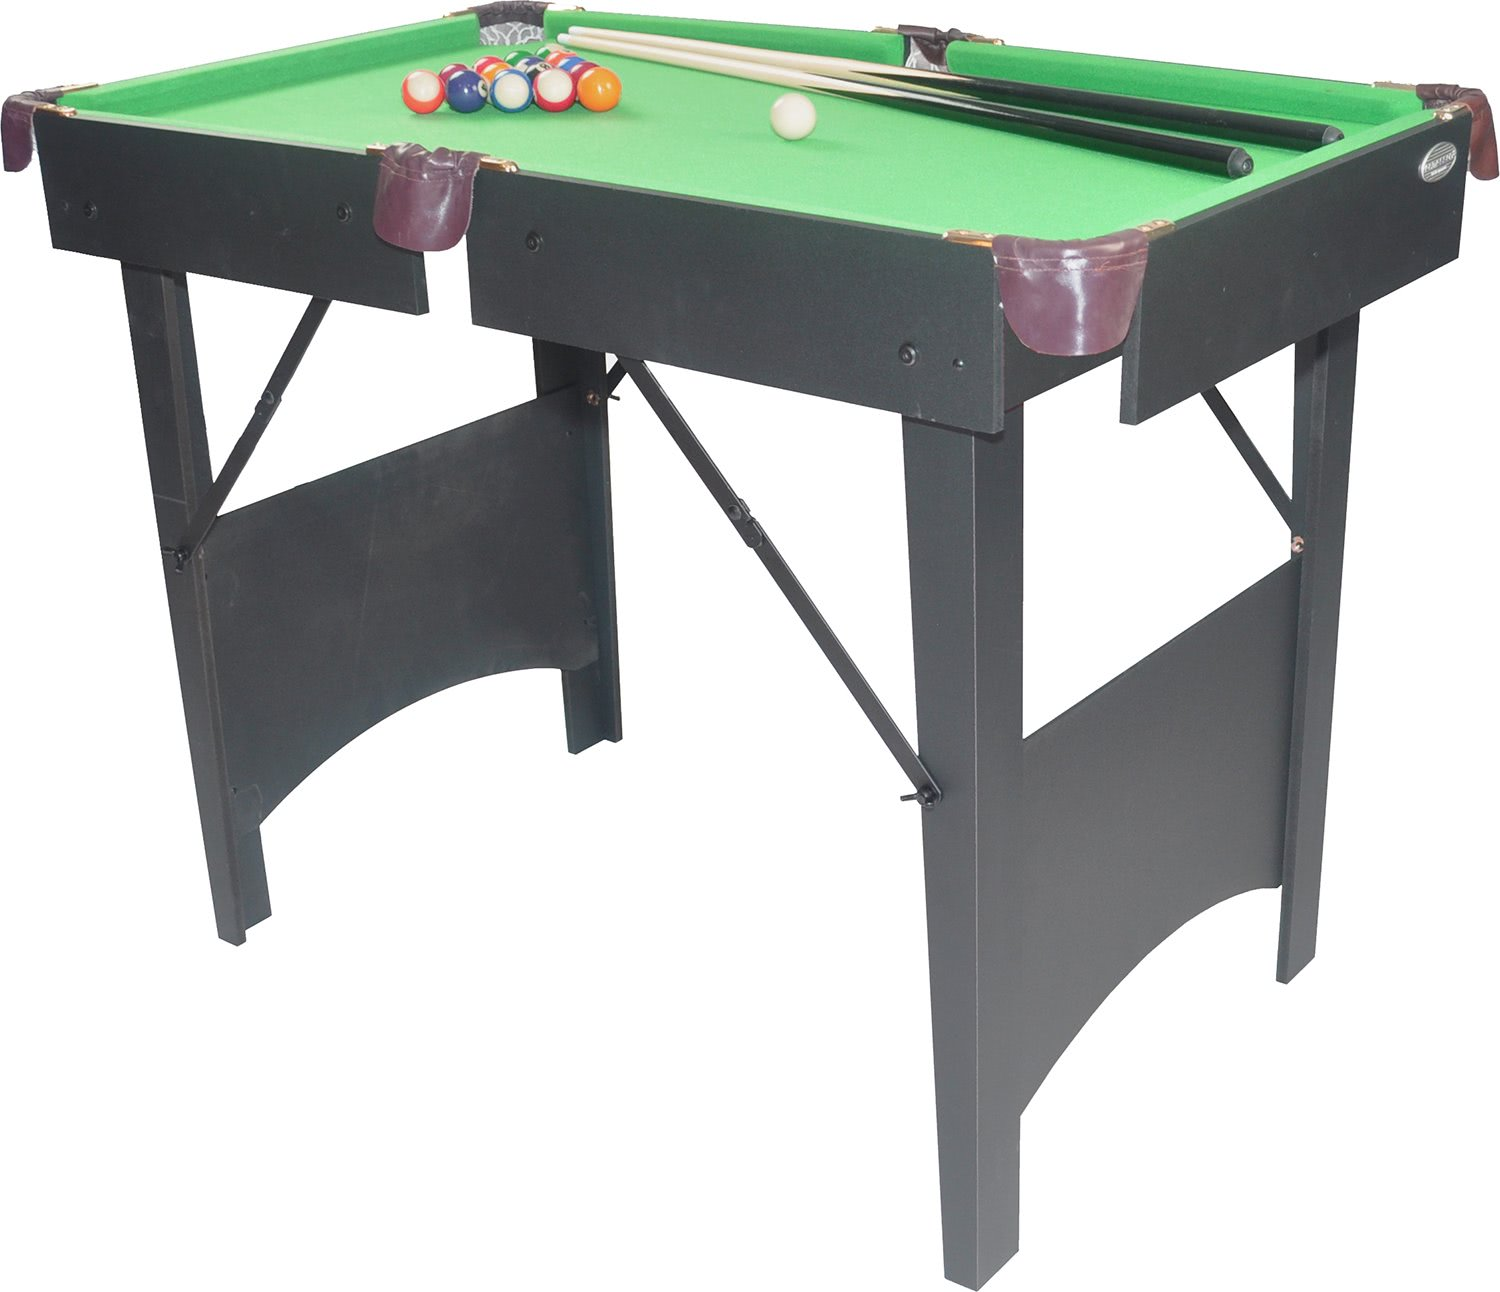 Gamesson cornell 3 foot 6 inch folding pool table for Table 6 foot